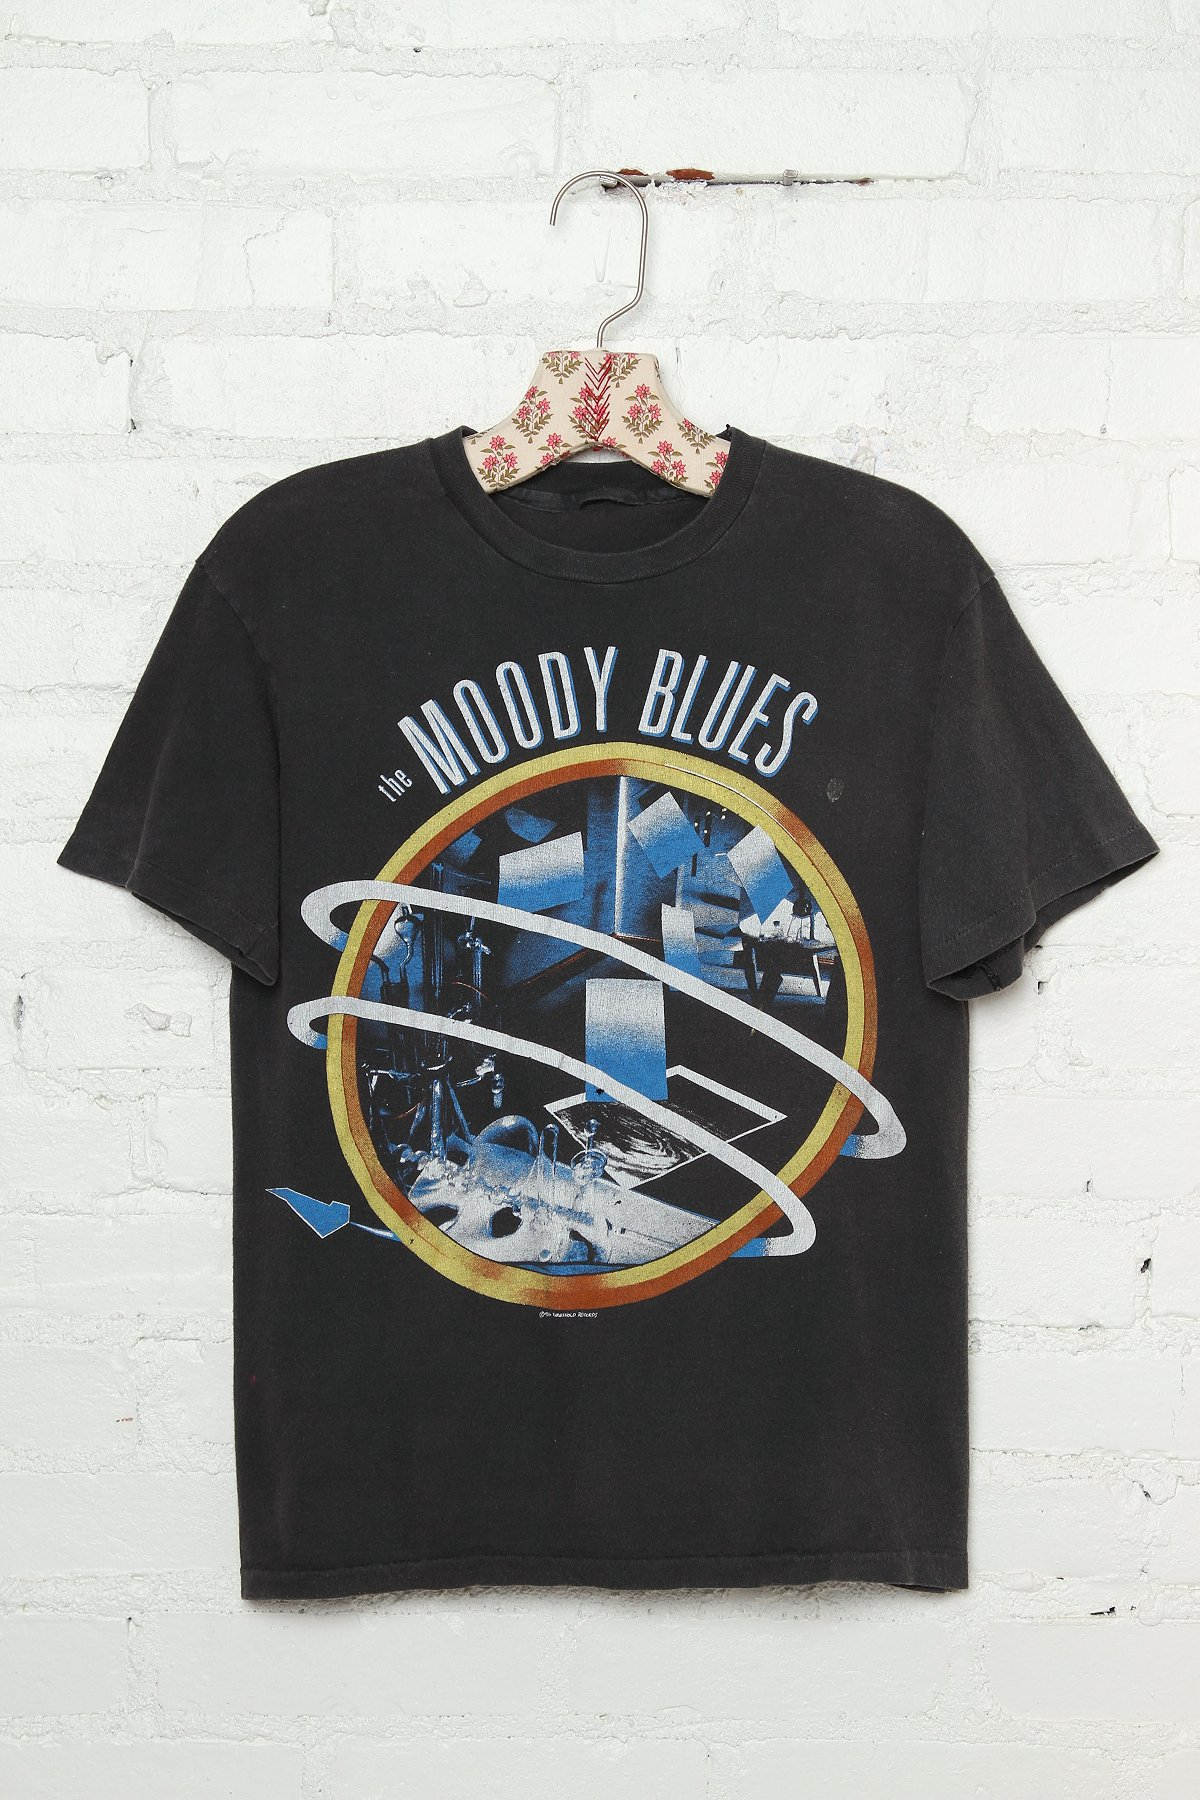 Vintage The Moody Blues Graphic Tee